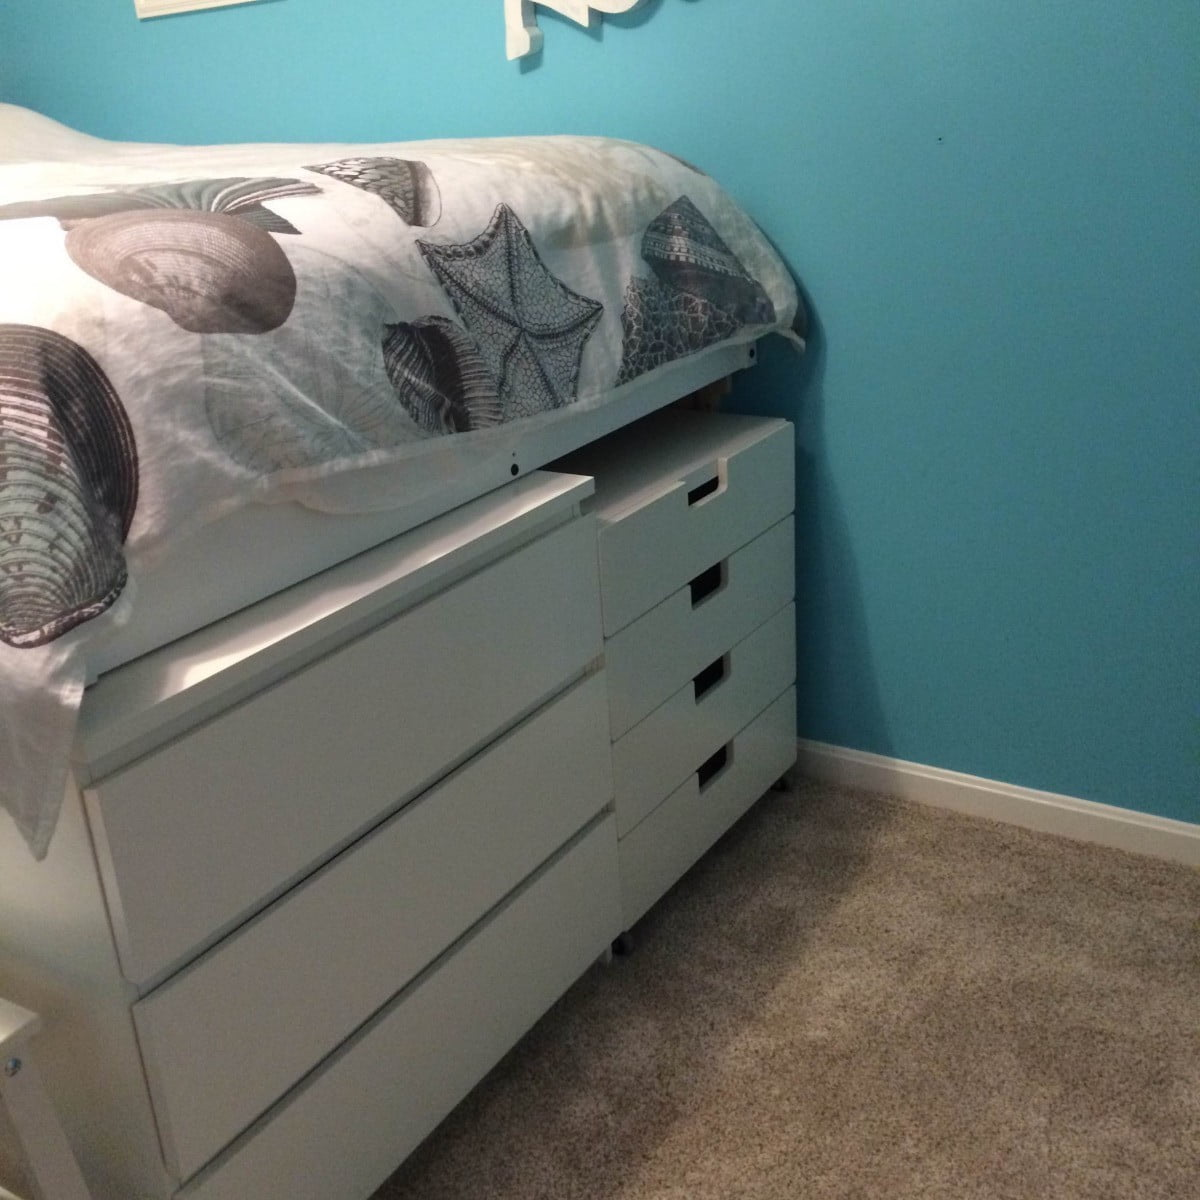 Platform Bed Ikea Hack Ikea Hack Platform Bed For Toddler Trends Including Pictures In Copiousblogger Com,How To Decorate A Wall Shelf